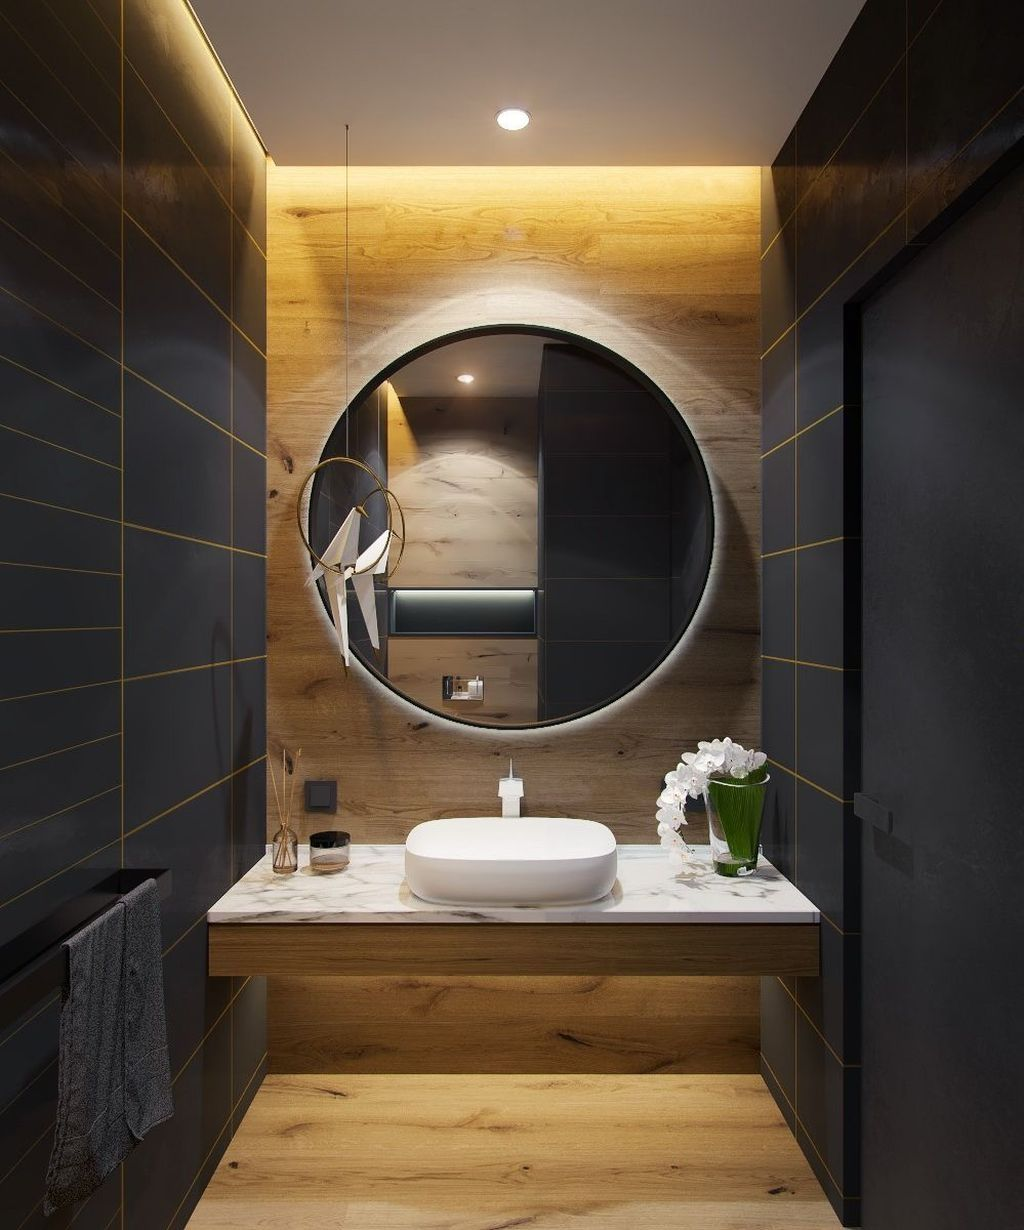 38 Cozy Small Office Bathroom Designs Ideas | Bathroom ...